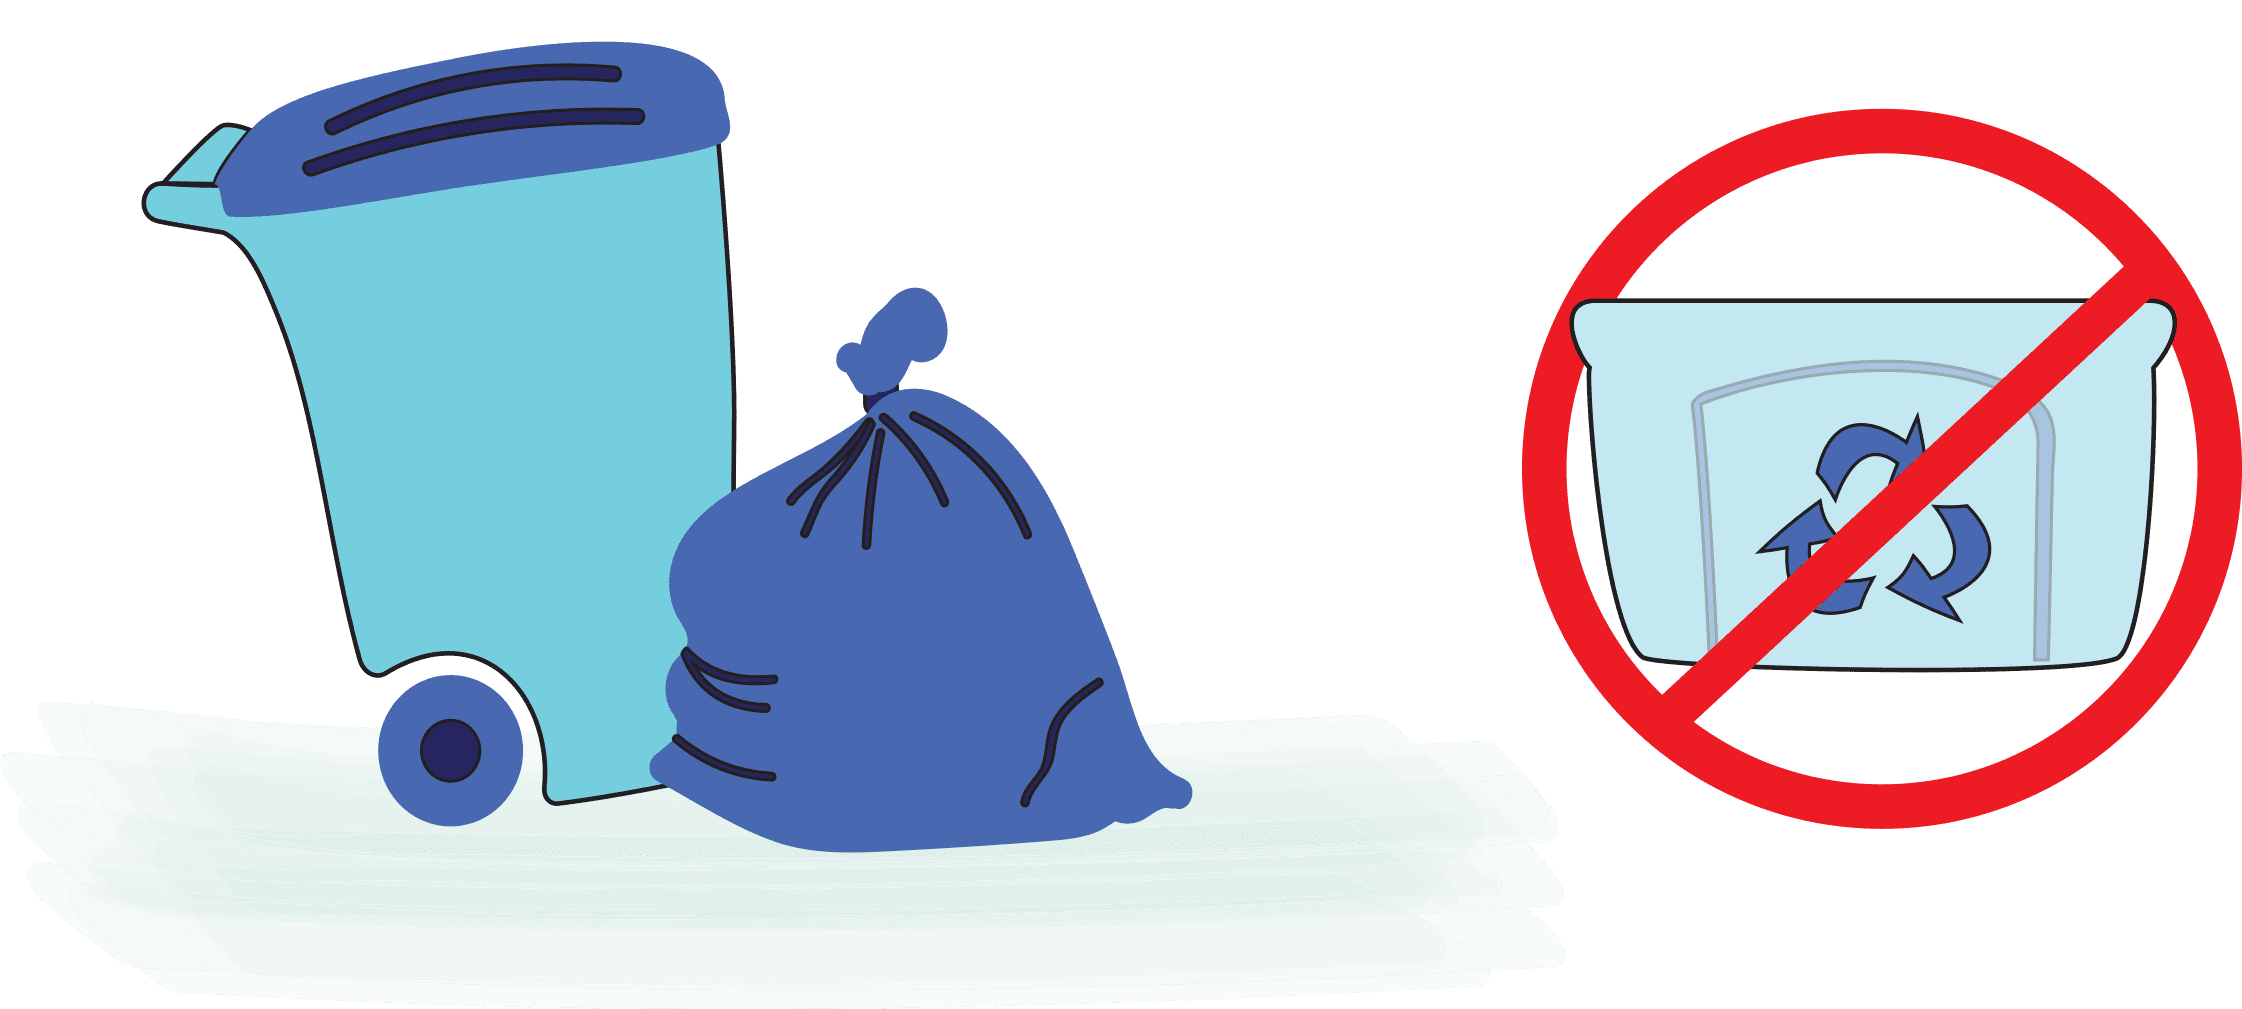 Put the plastic container in the household trash - don't recycle!